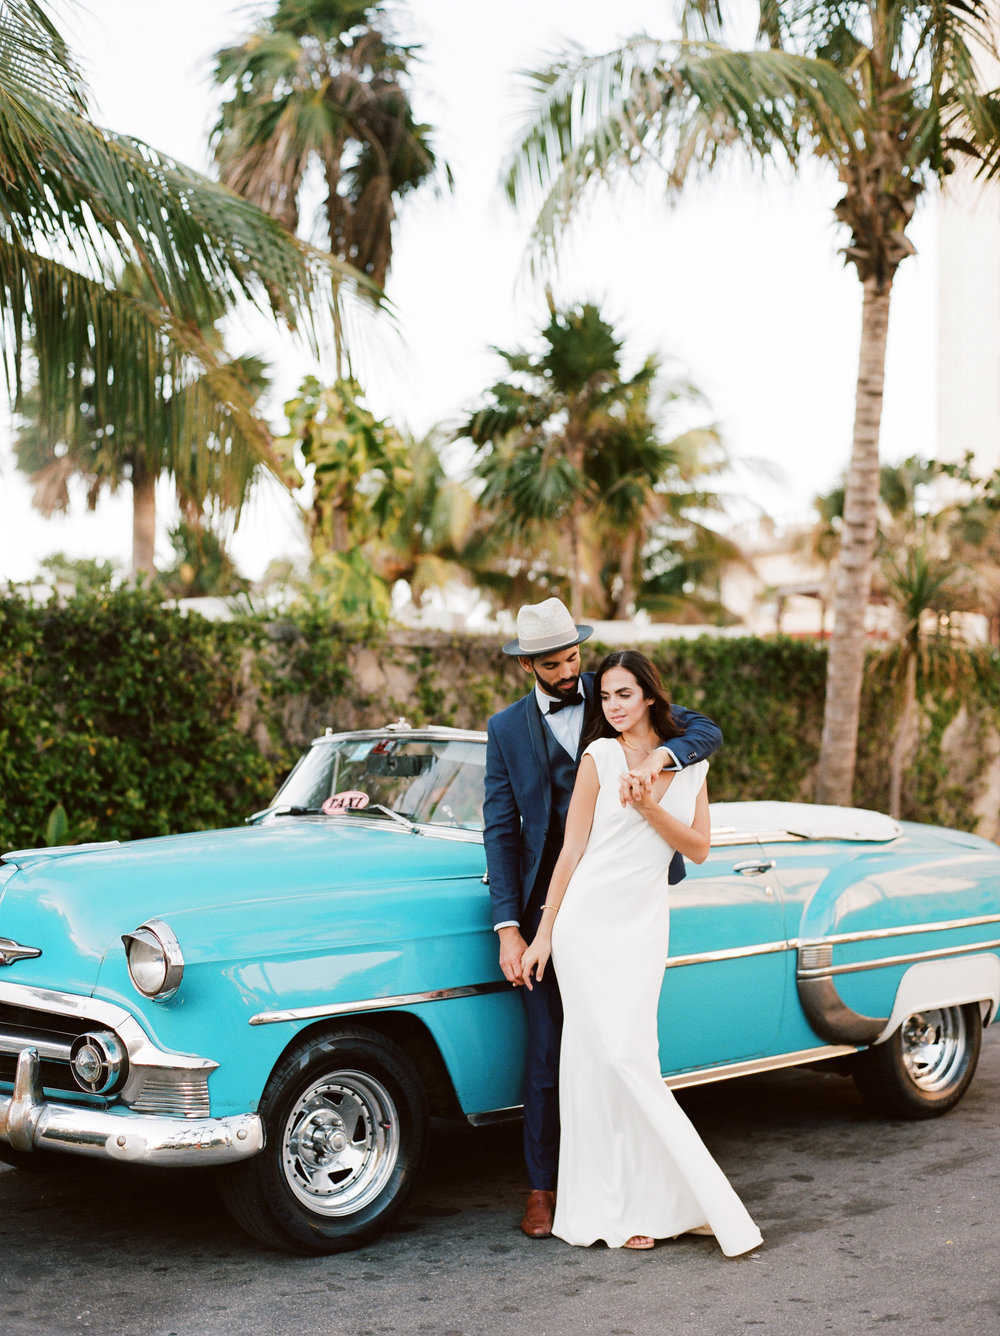 Future Bride and groom by blue vintage chevy in Havana